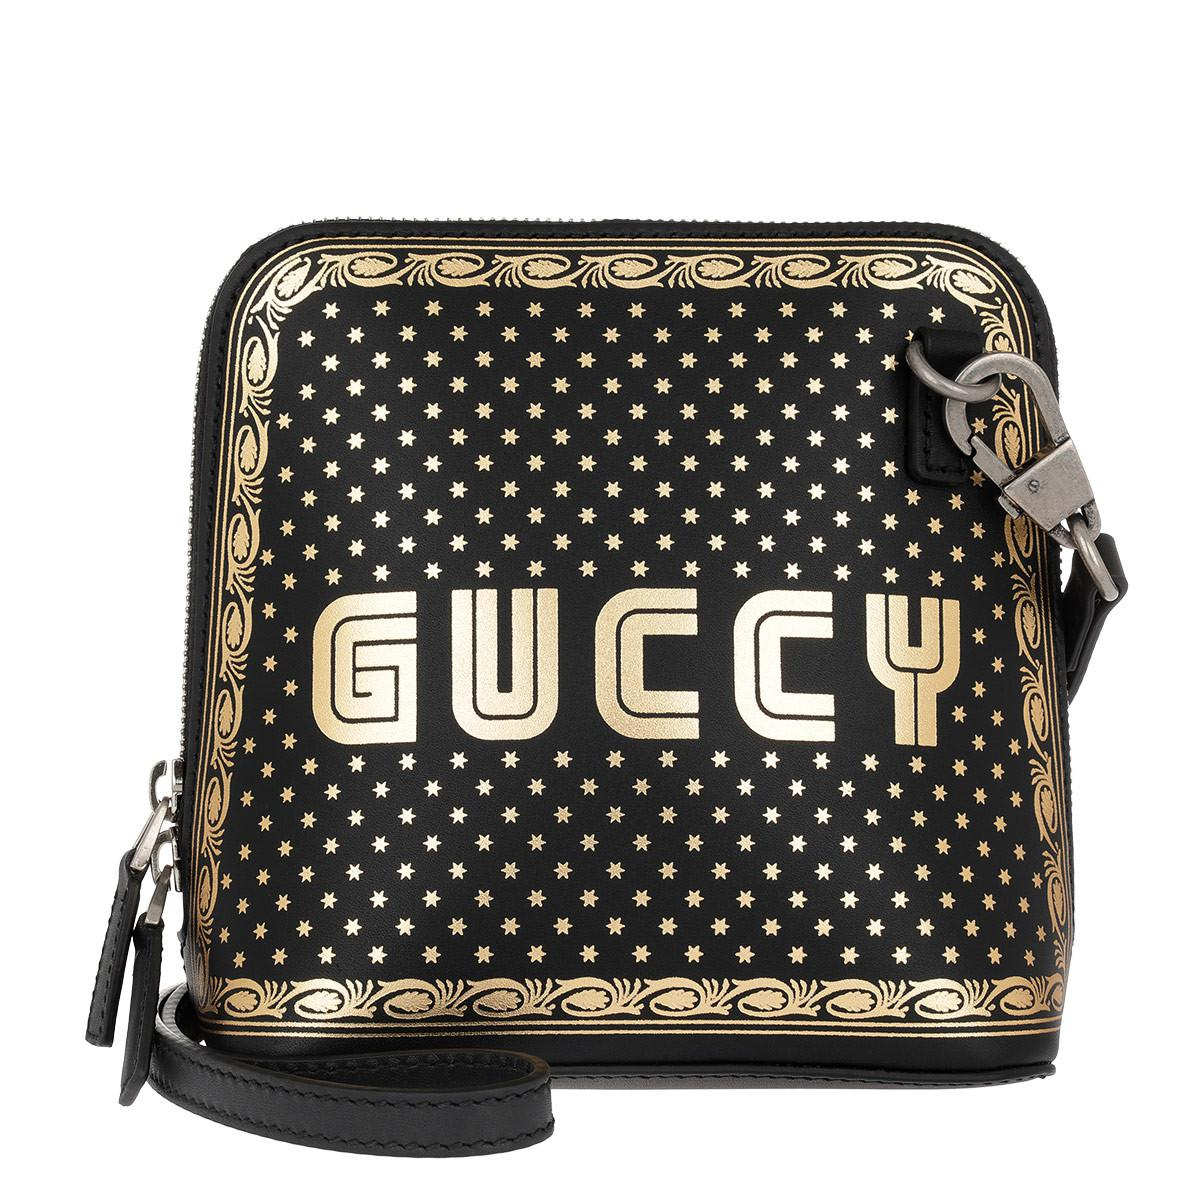 3476dbb5347750 Gucci Guccy Mini Shoulder Bag Black in Black - Save 59% - Lyst